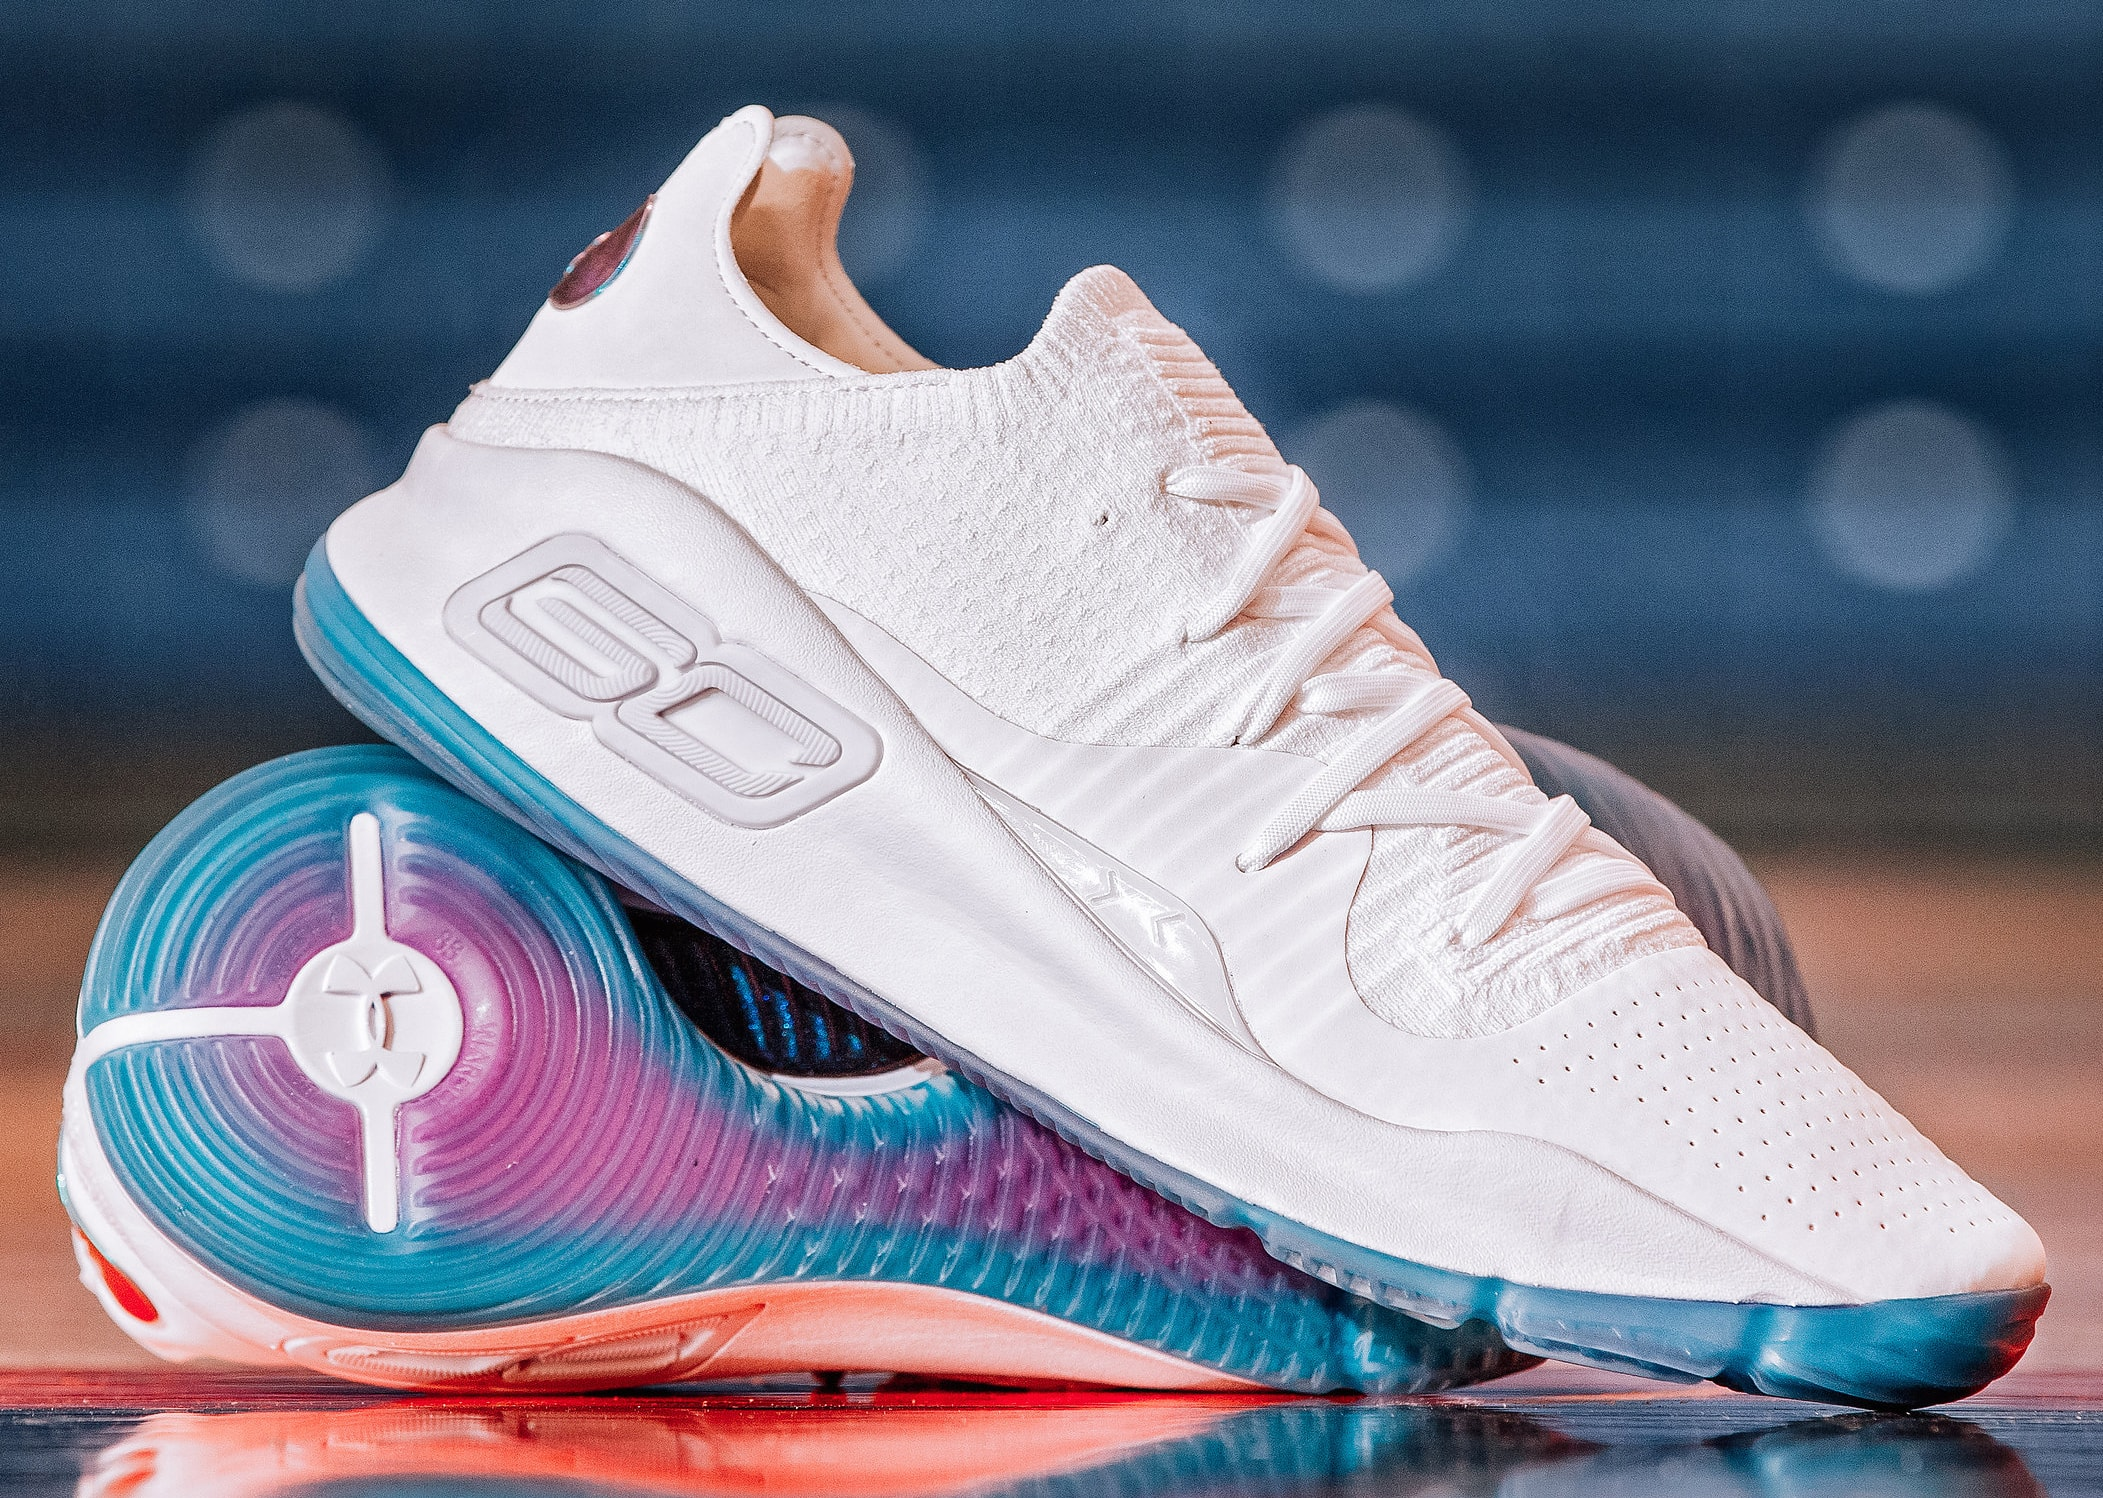 Under Armour Curry 4 Low 'Unleash Chaos' (Pair)